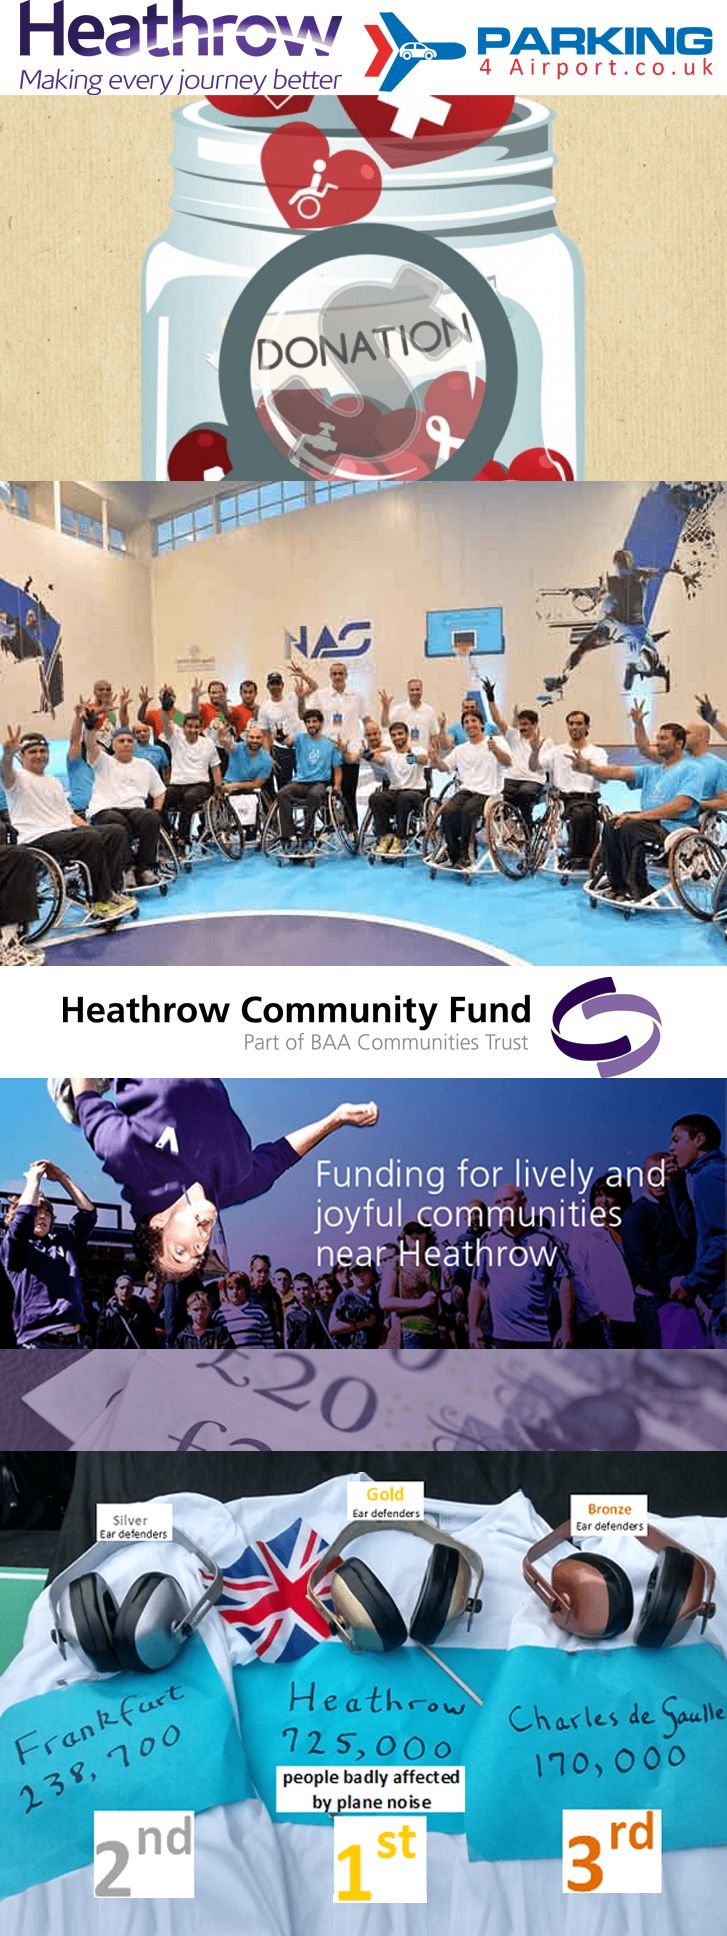 Is Airports Plays Their Role in Charity Funds to Strengthen Their Country? Community fund is part Heathrow as an independent project which receives funds from Heathrow Airport Limited.  #CharityFund #HeathrowAirport #Parking4Airport #DisabledFacilities #TrustAndFoundations #HeathrowCommunityFund #NoiseReduction #HeathrowAirportCharity  For Detail:https://www.parking4airport.co.uk/blog/airports-plays-role-charity-funds-strengthen-country/